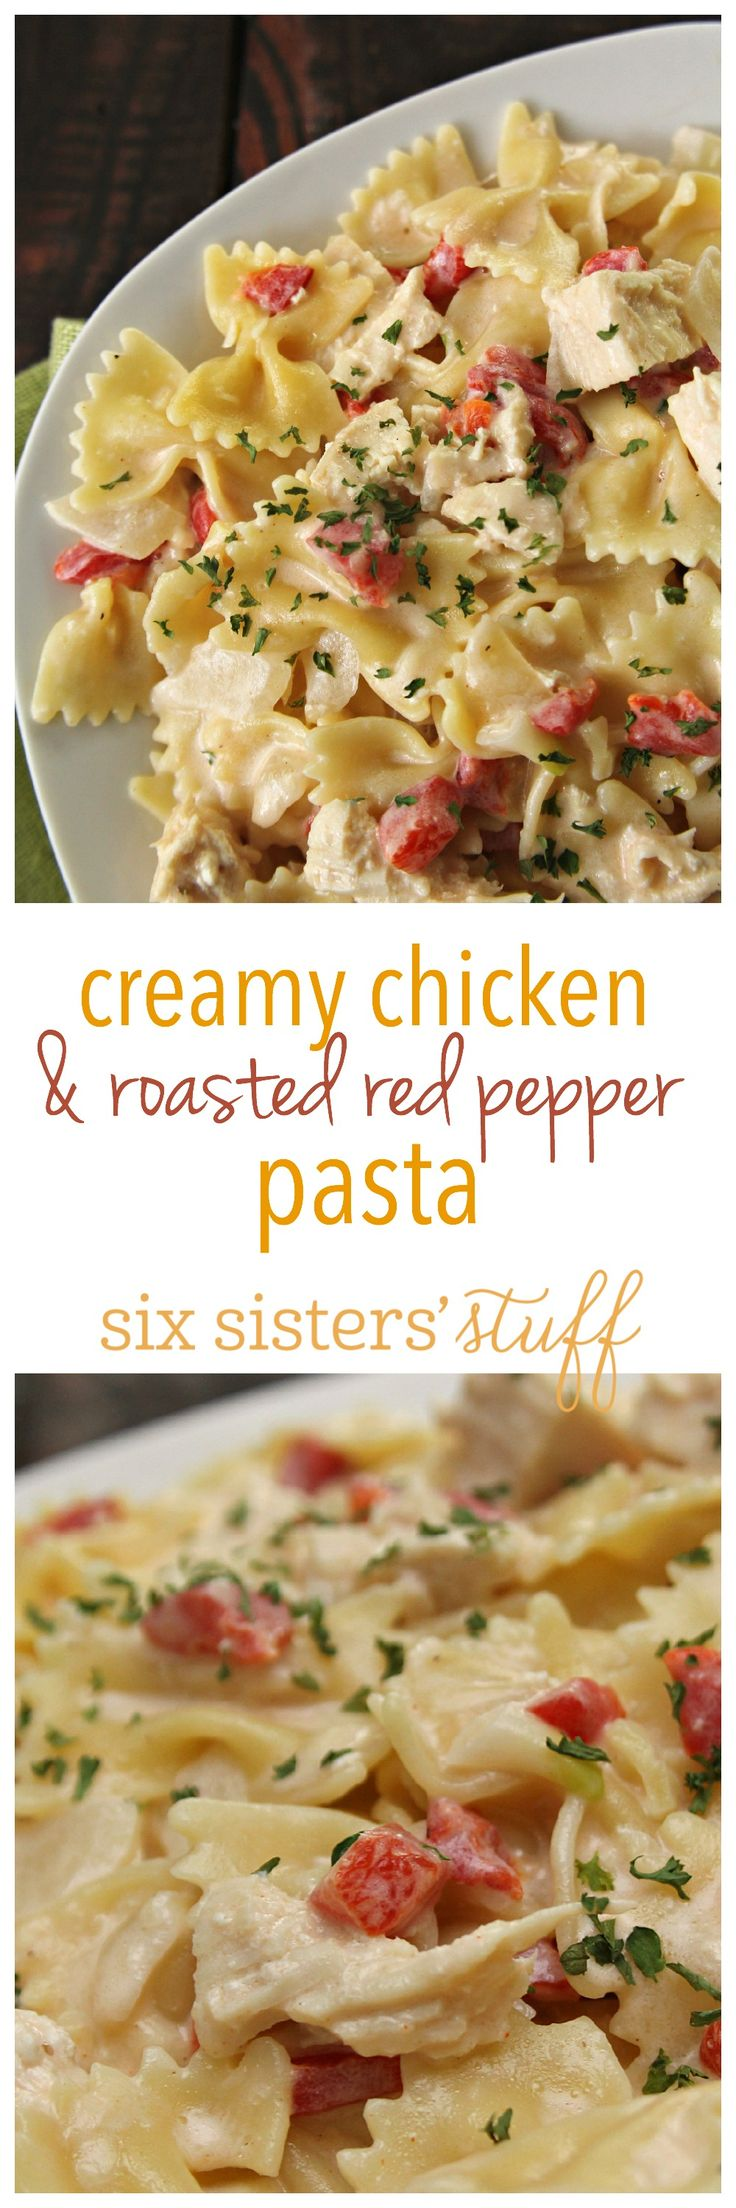 Creamy Chicken With Broccoli And Red Pepper Pasta Recipe — Dishmaps